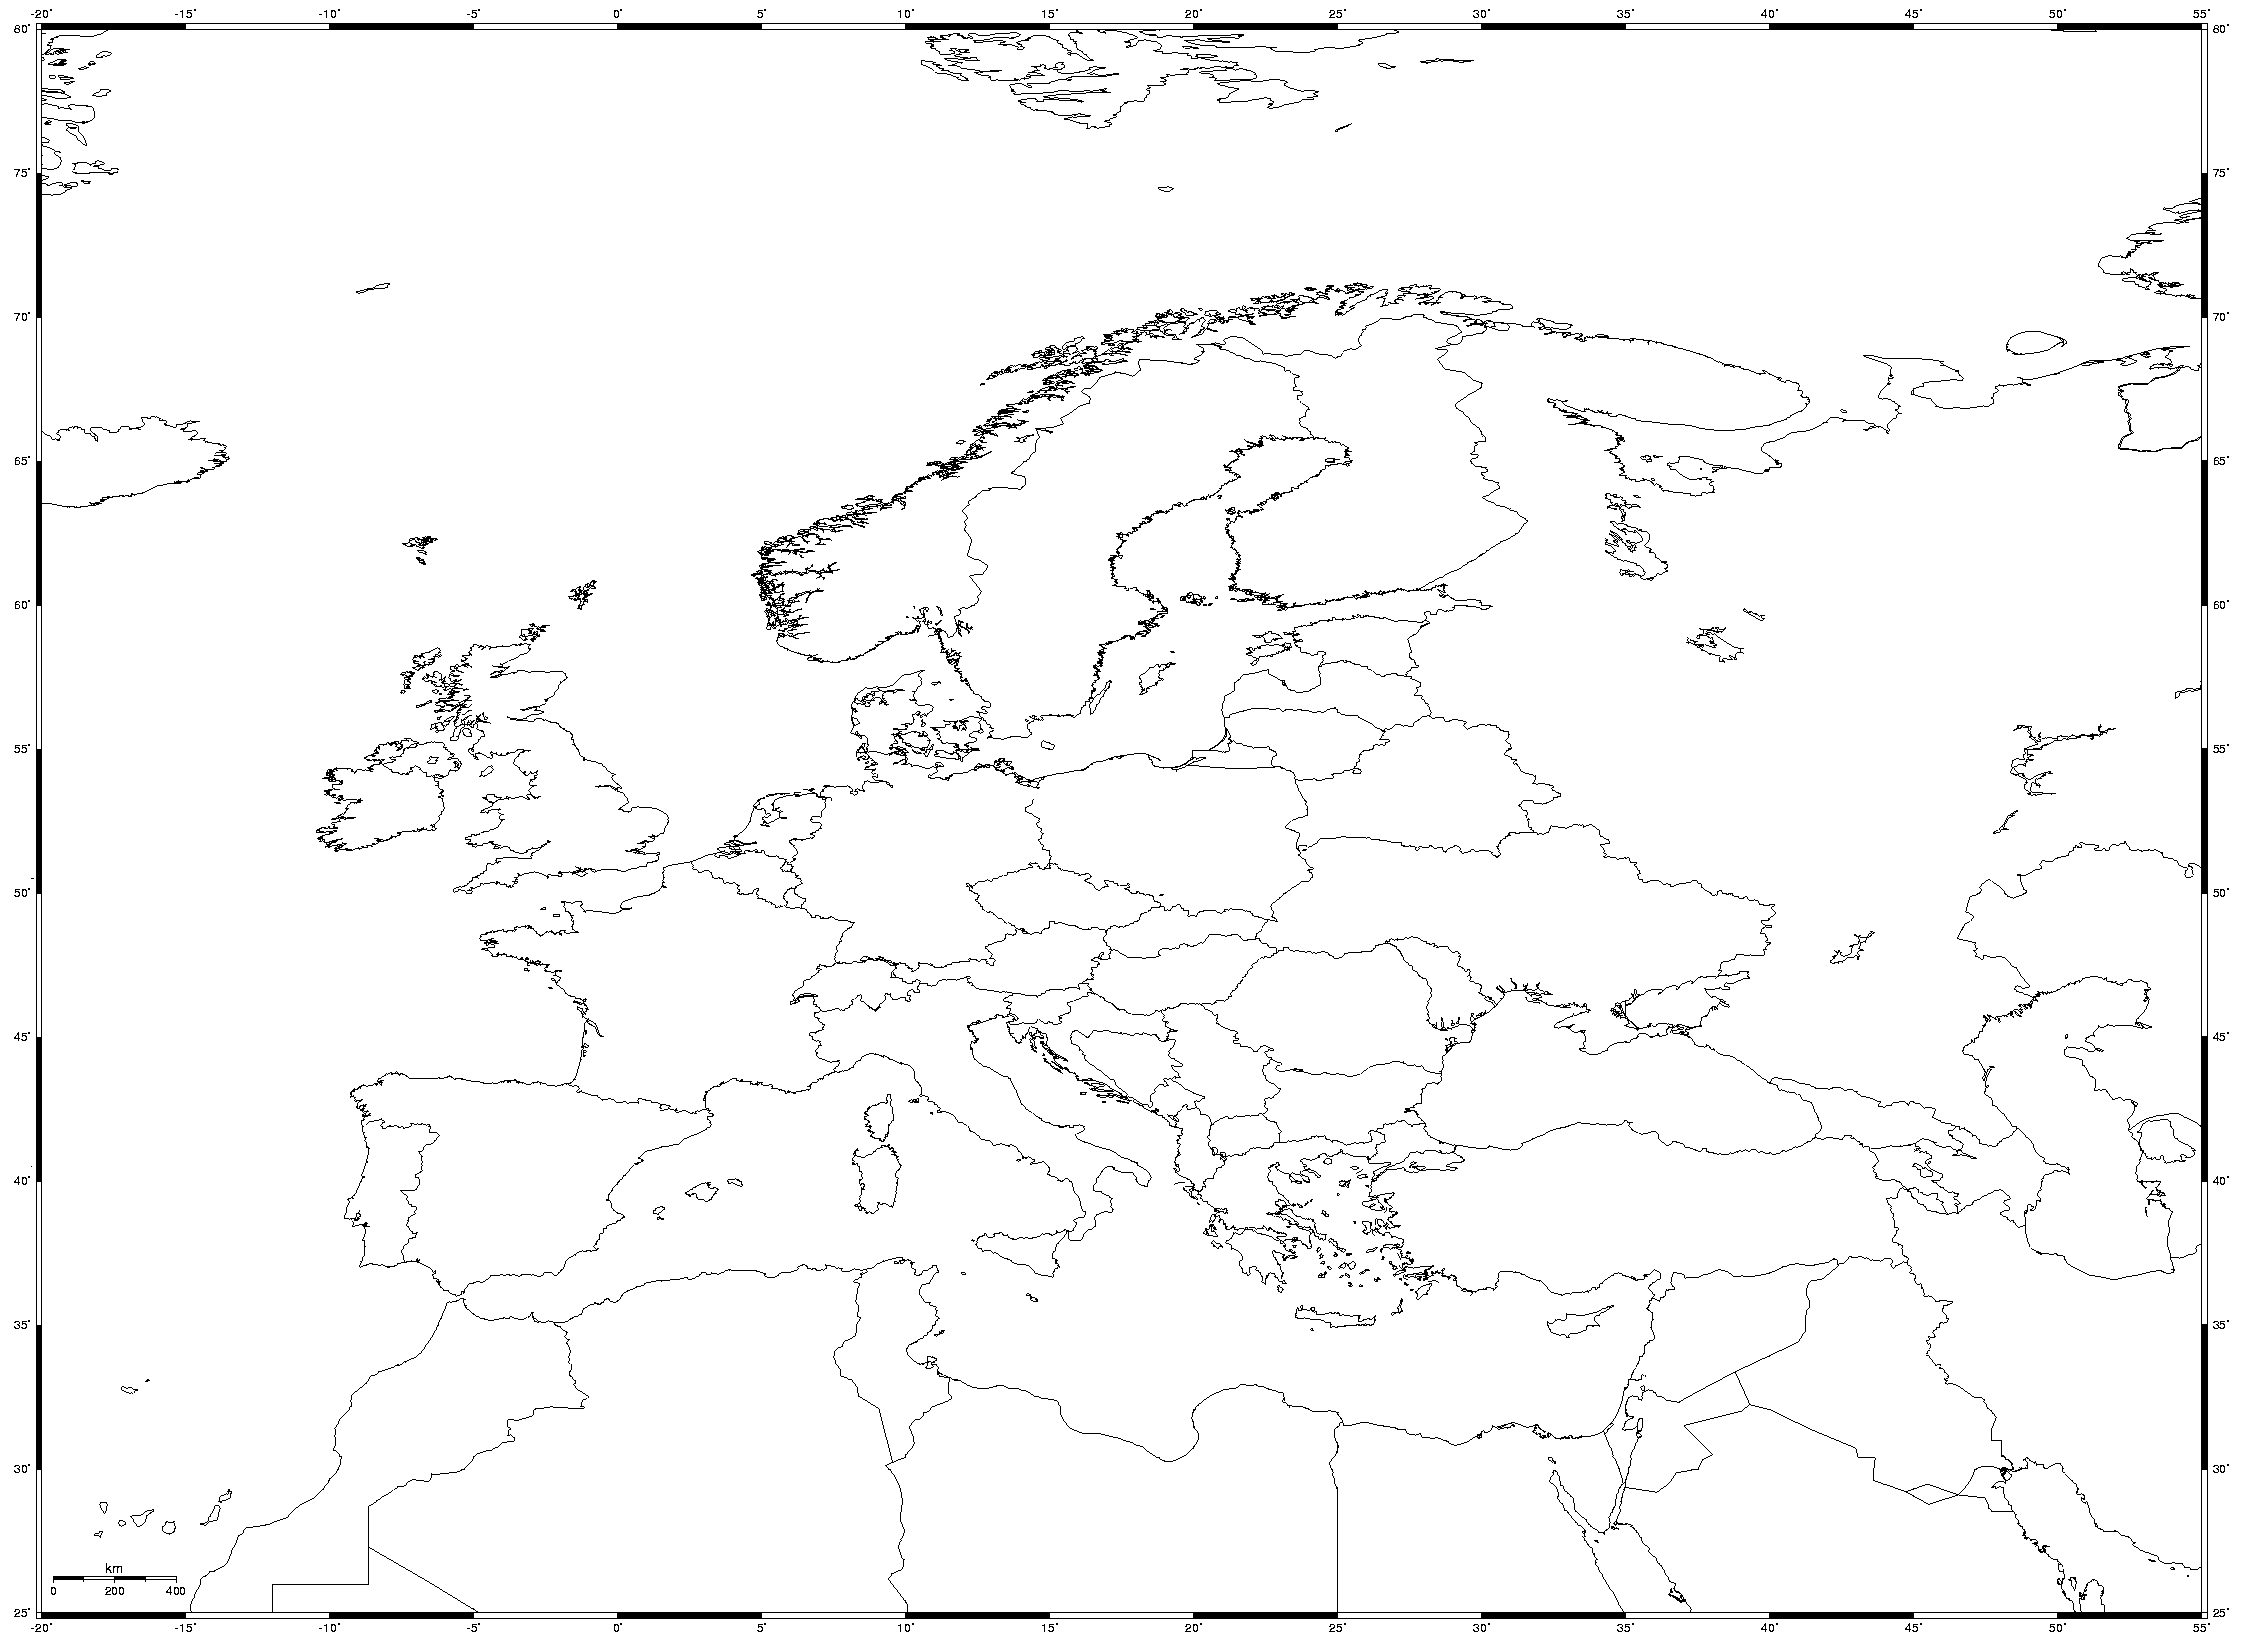 Equidistant Cylindrical Blank Map of Europe  Mapsofnet